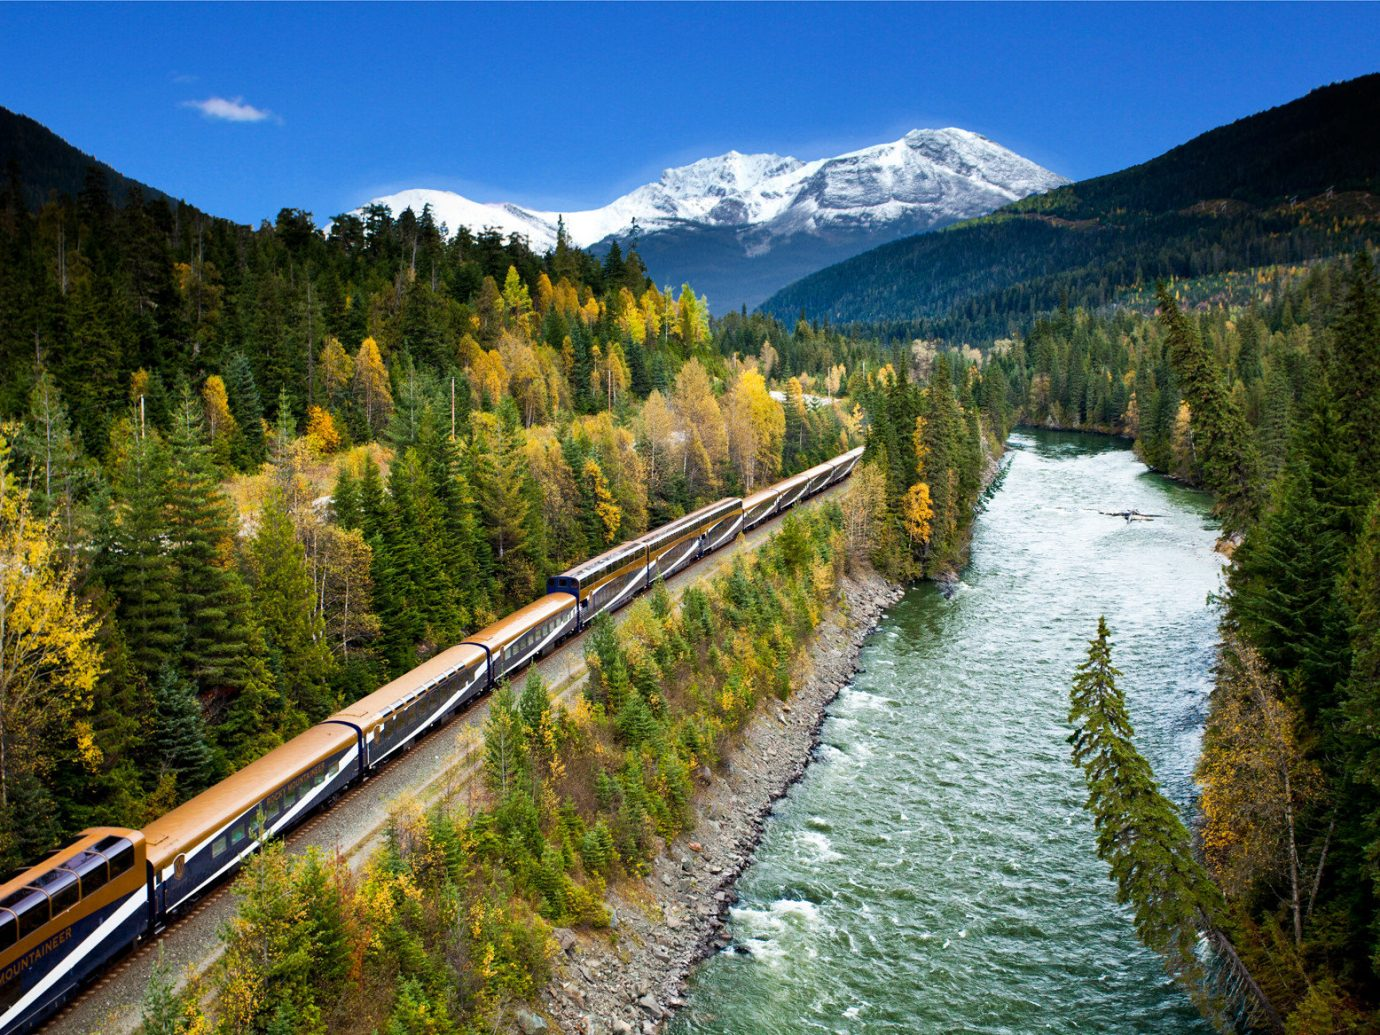 Hotels National Parks Outdoors + Adventure Trip Ideas tree train outdoor sky mountain track grass mountainous landforms landform geographical feature transport wilderness mountain range River Nature Forest traveling reflection valley Lake mountain pass landscape waterway autumn reservoir alps surrounded hillside long wooded lush wood moving highland